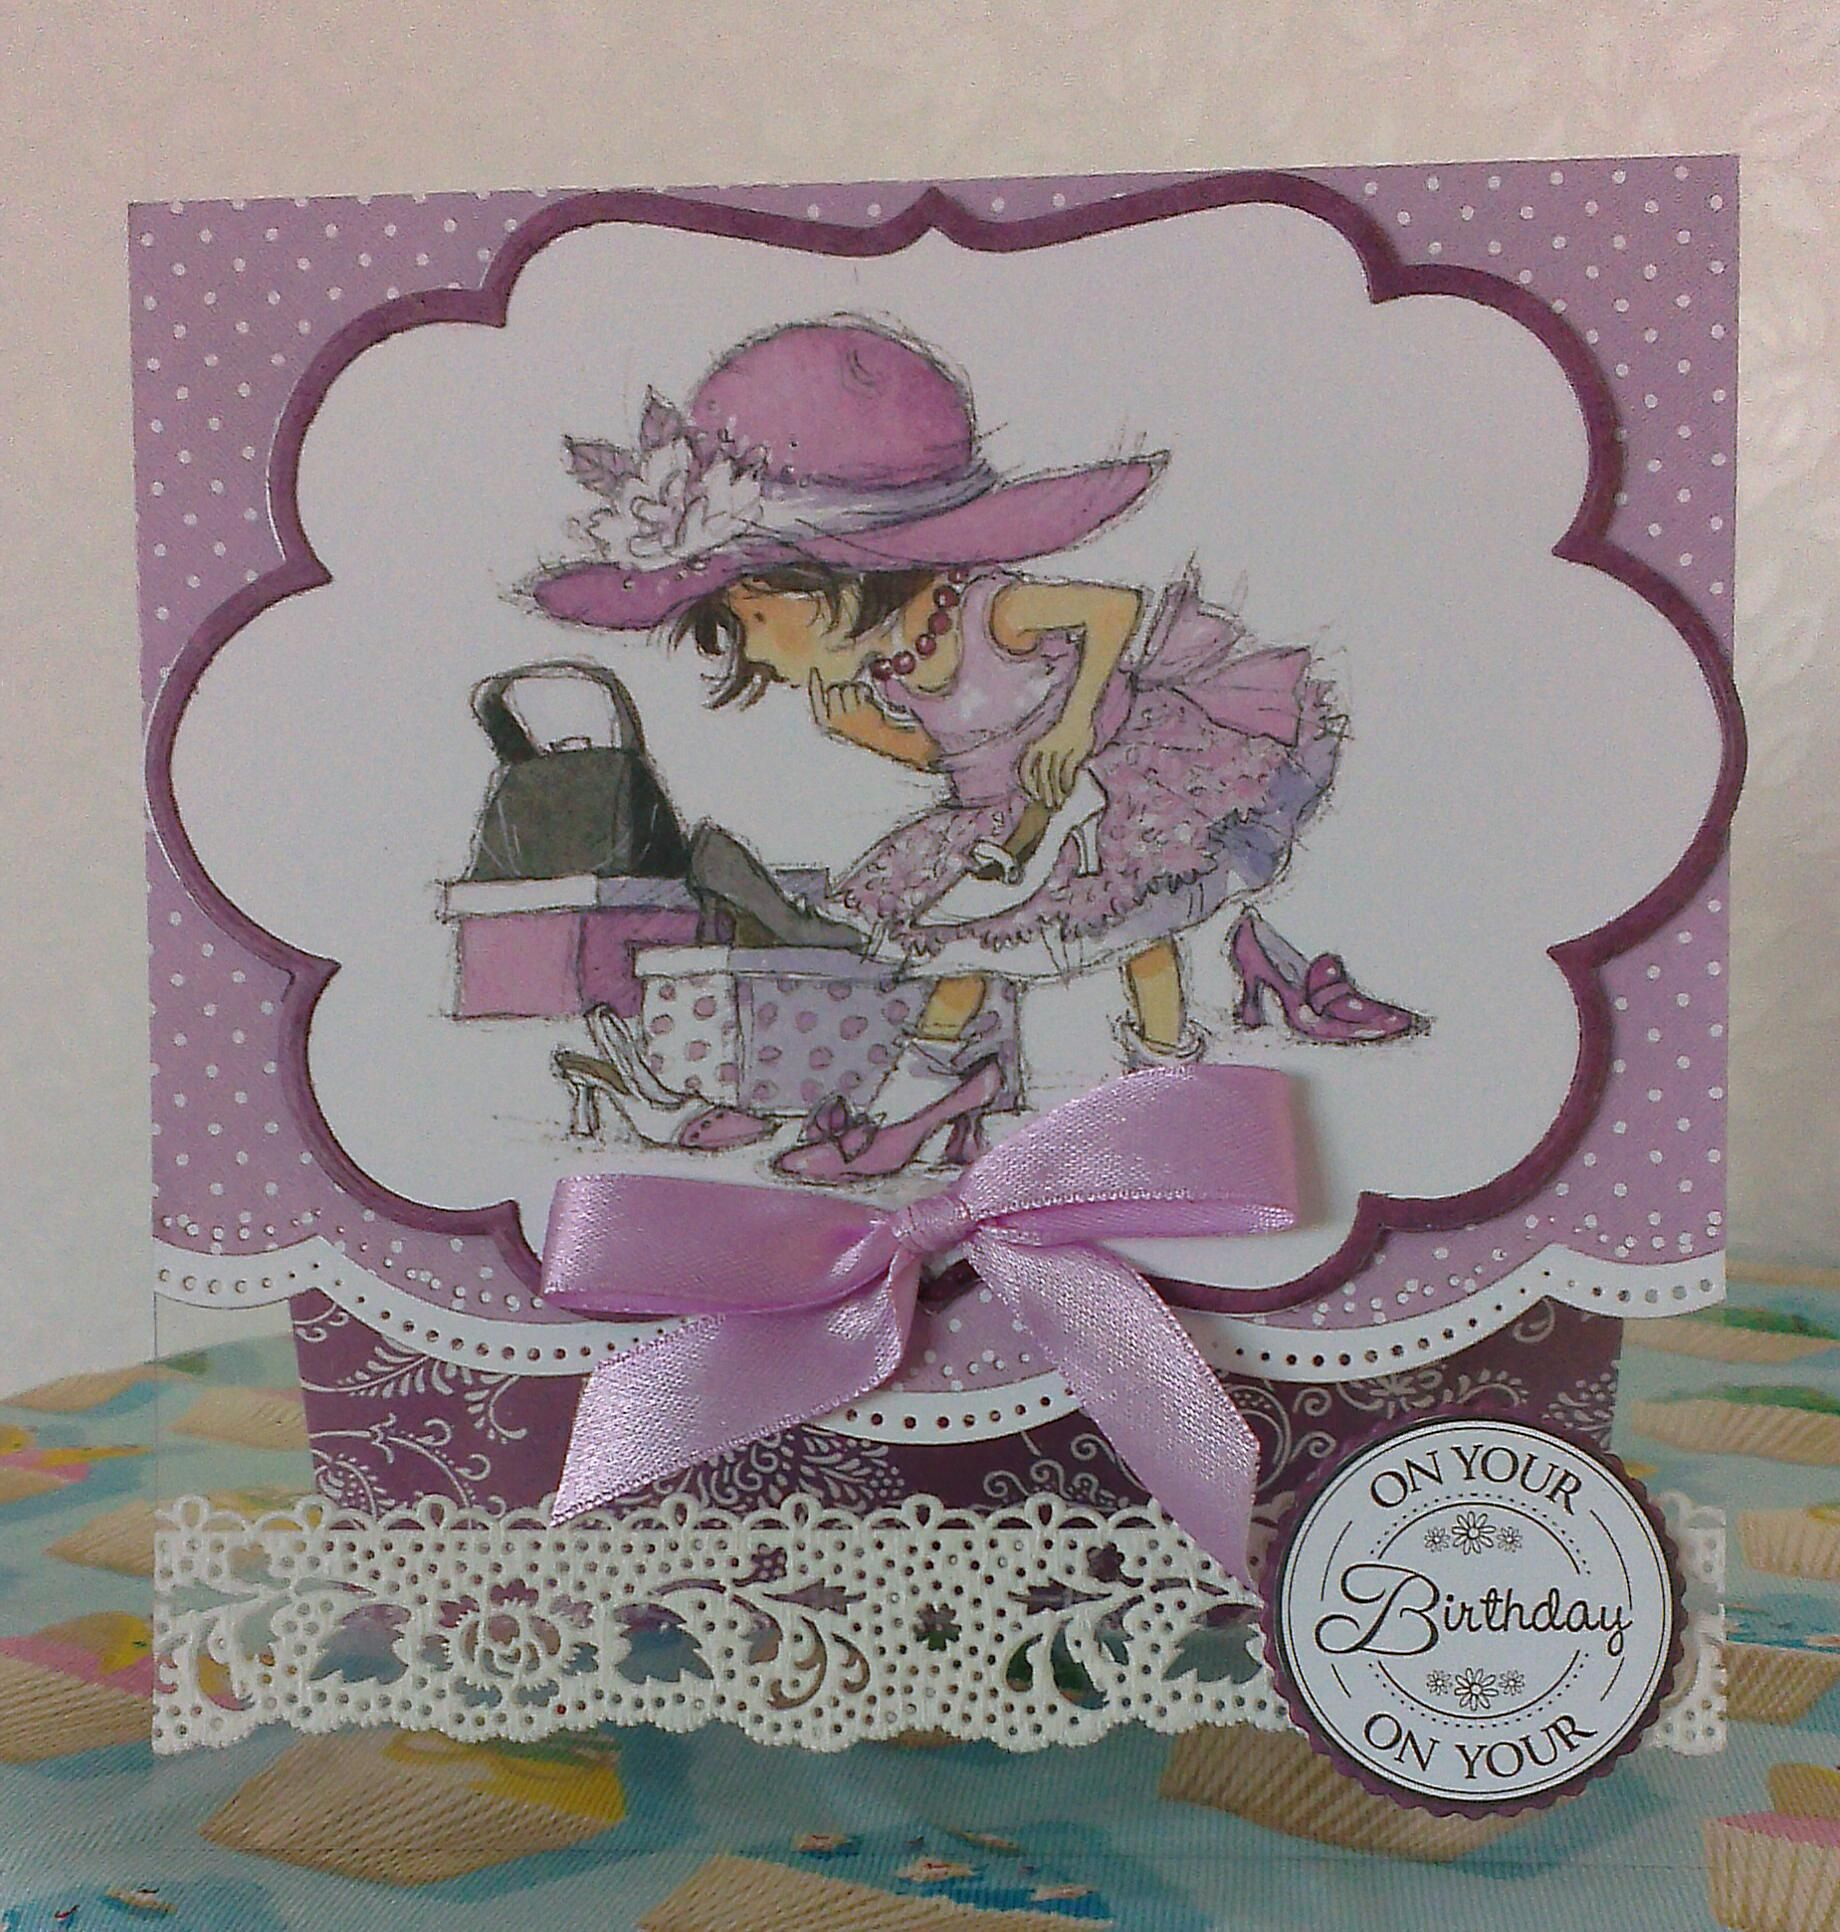 Handmade card using Lili of the valley art pads and Marianne dies